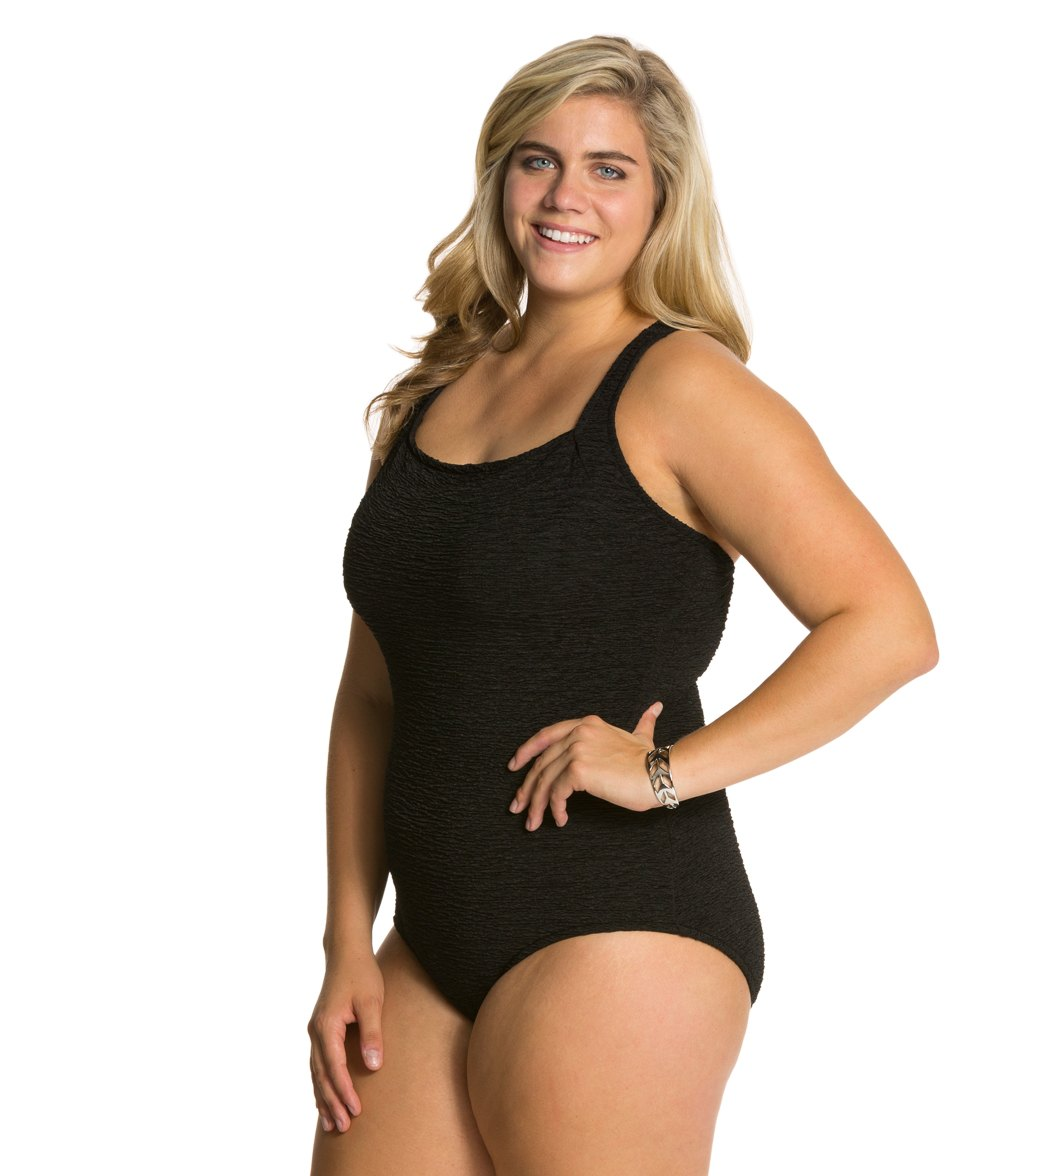 2c03bab8a8224 Penbrooke Krinkle Plus Size Chlorine Resistant Active Back One Piece  Swimsuit (D-Cup) at SwimOutlet.com - Free Shipping